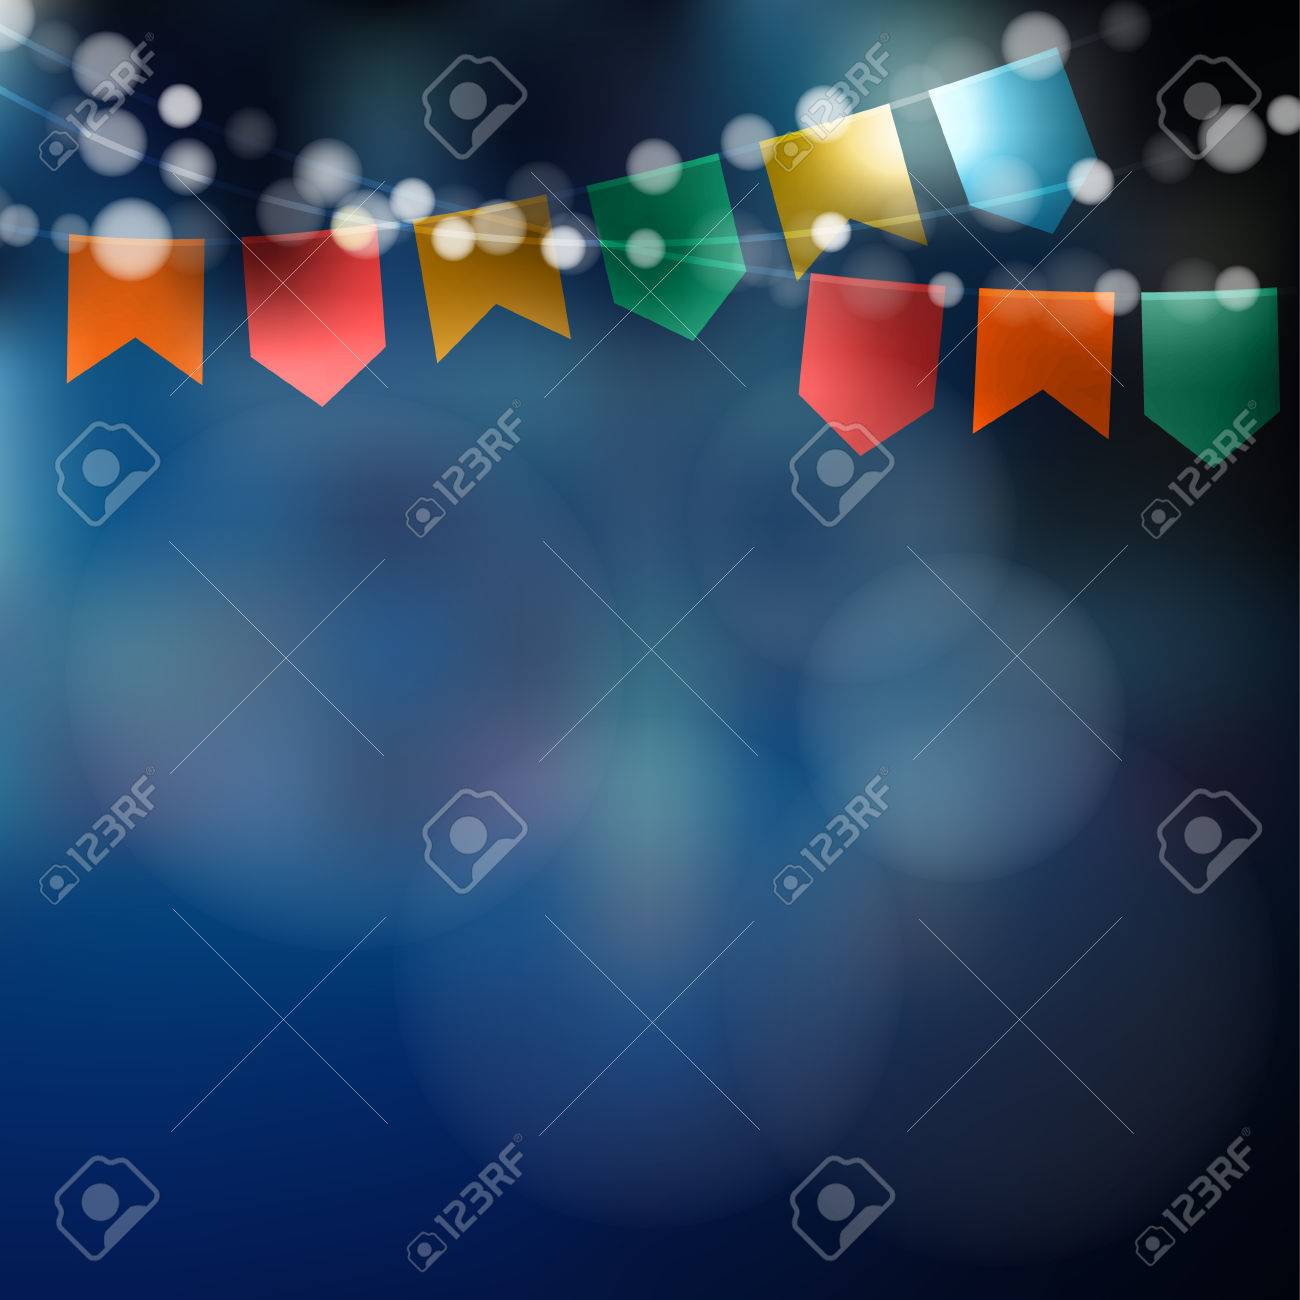 Brazilian june party. Festa junina. String of lights, party flags. Party decoration. Festive night, blurred background. - 56757131